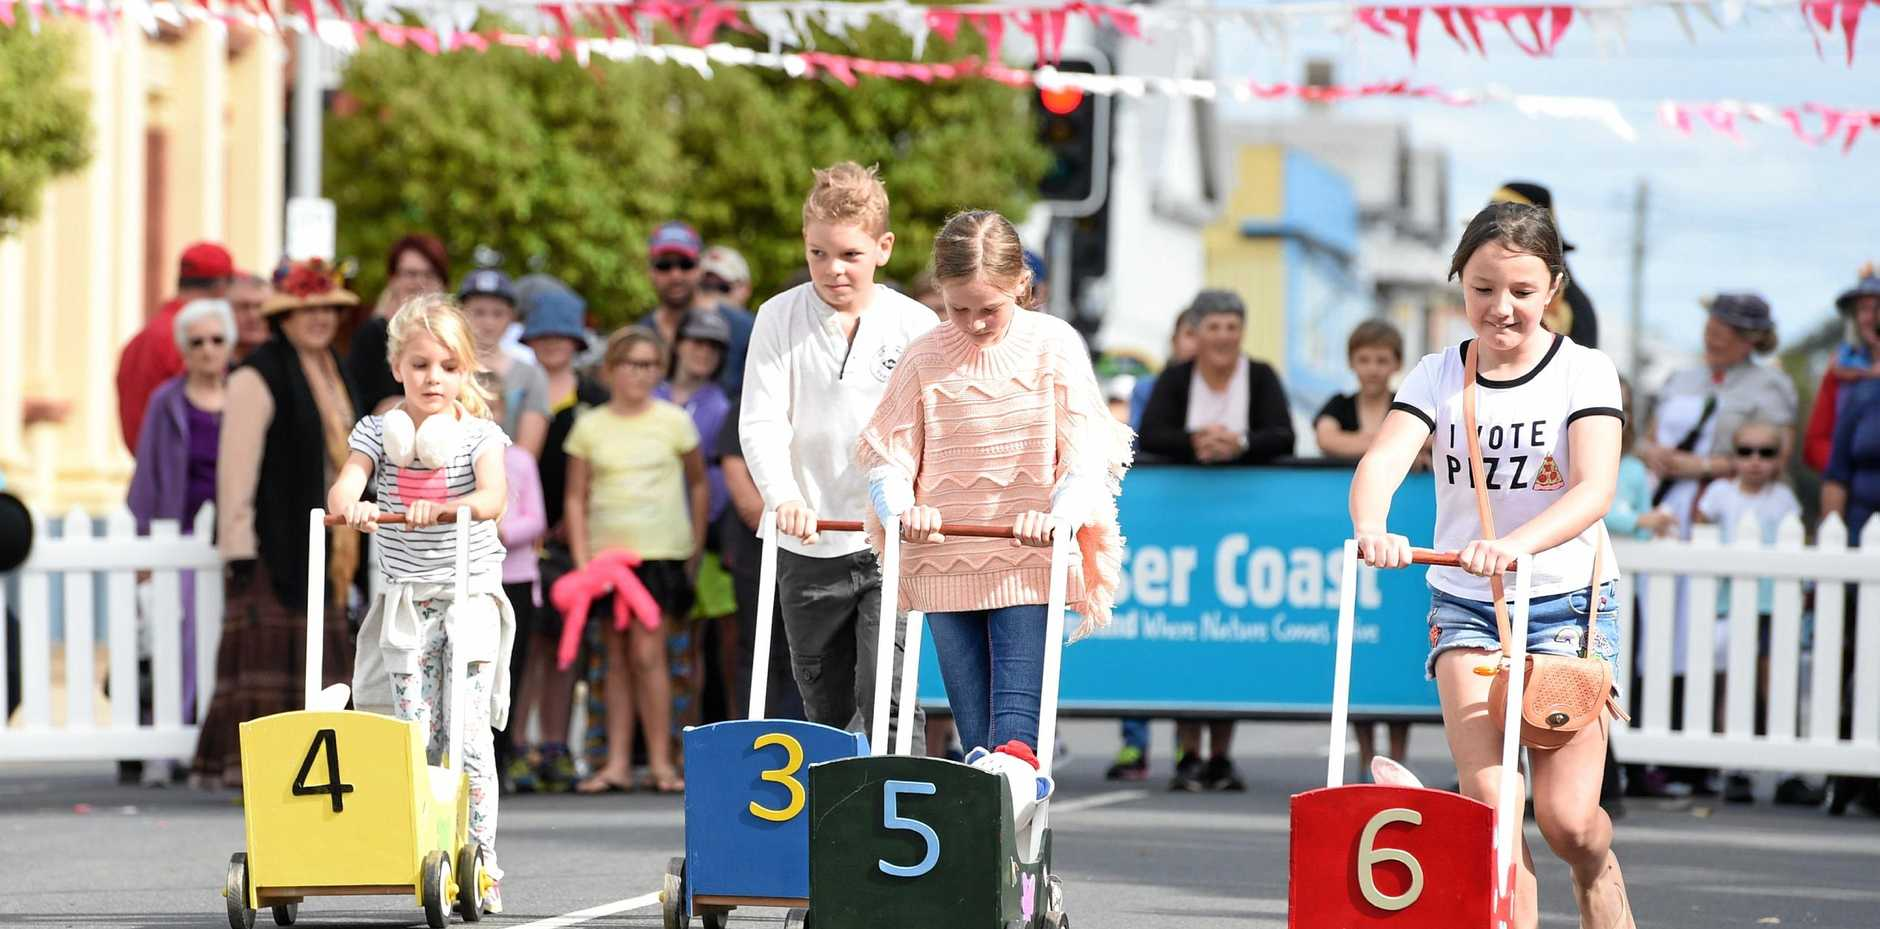 So much to do at Mary Poppins in the Park including the great childrens nanny race.